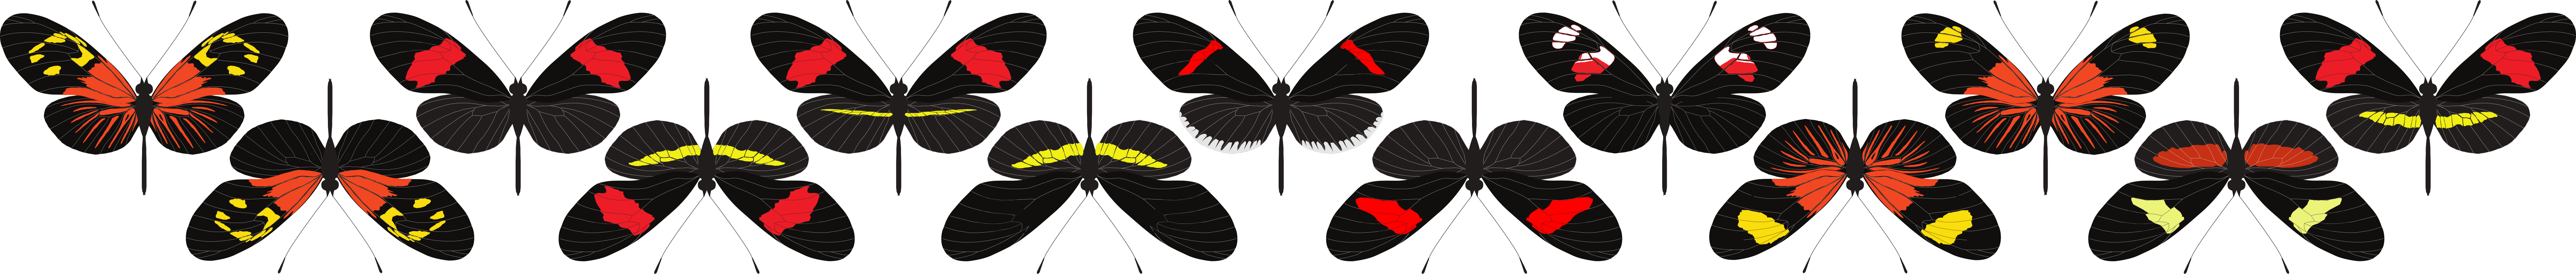 Sample of Heliconius erato diversity explored in the study.